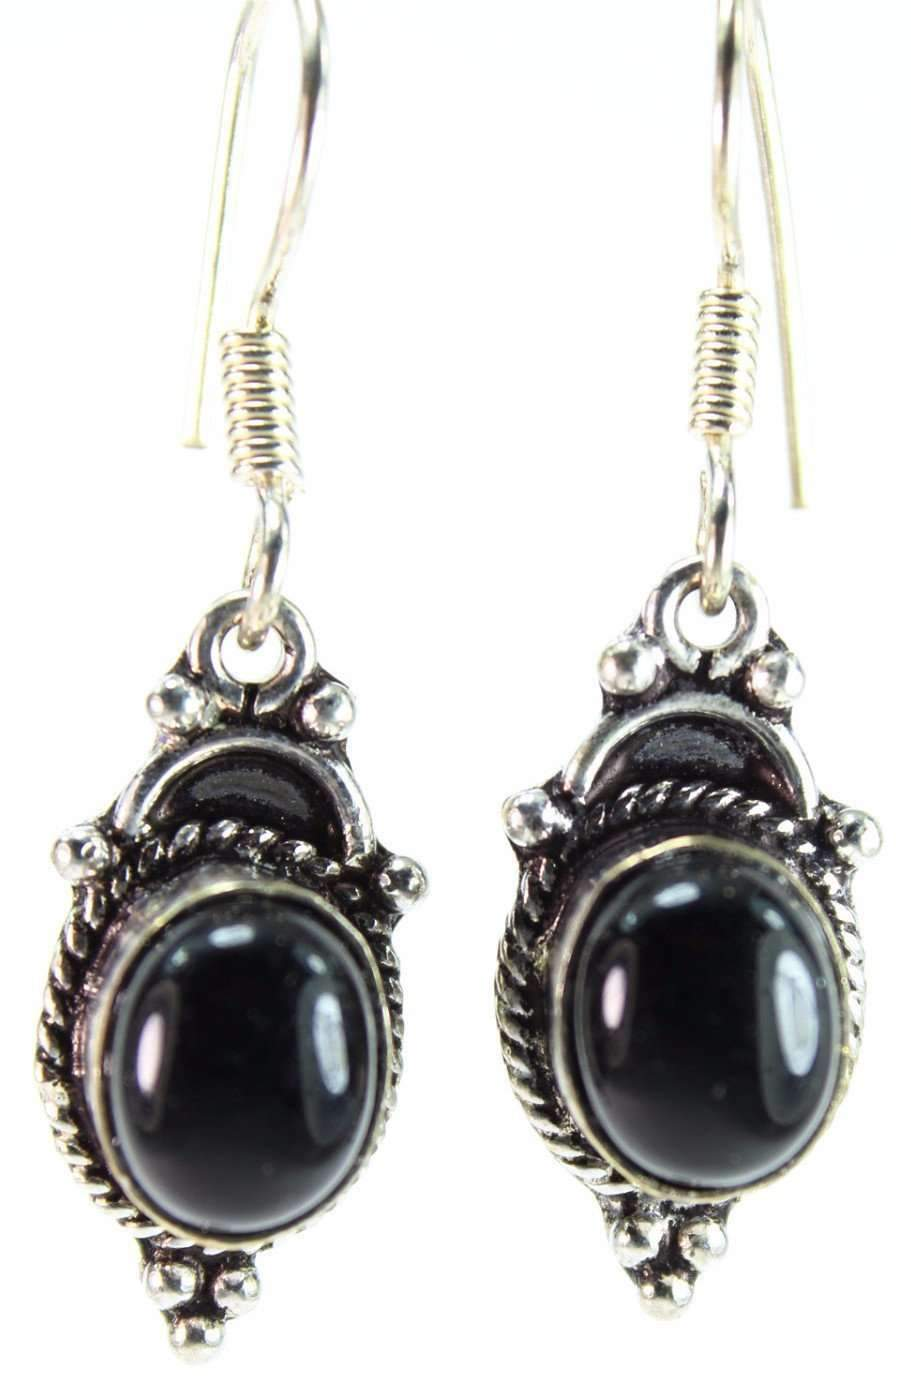 Glowing Black Agate Drop Earrings